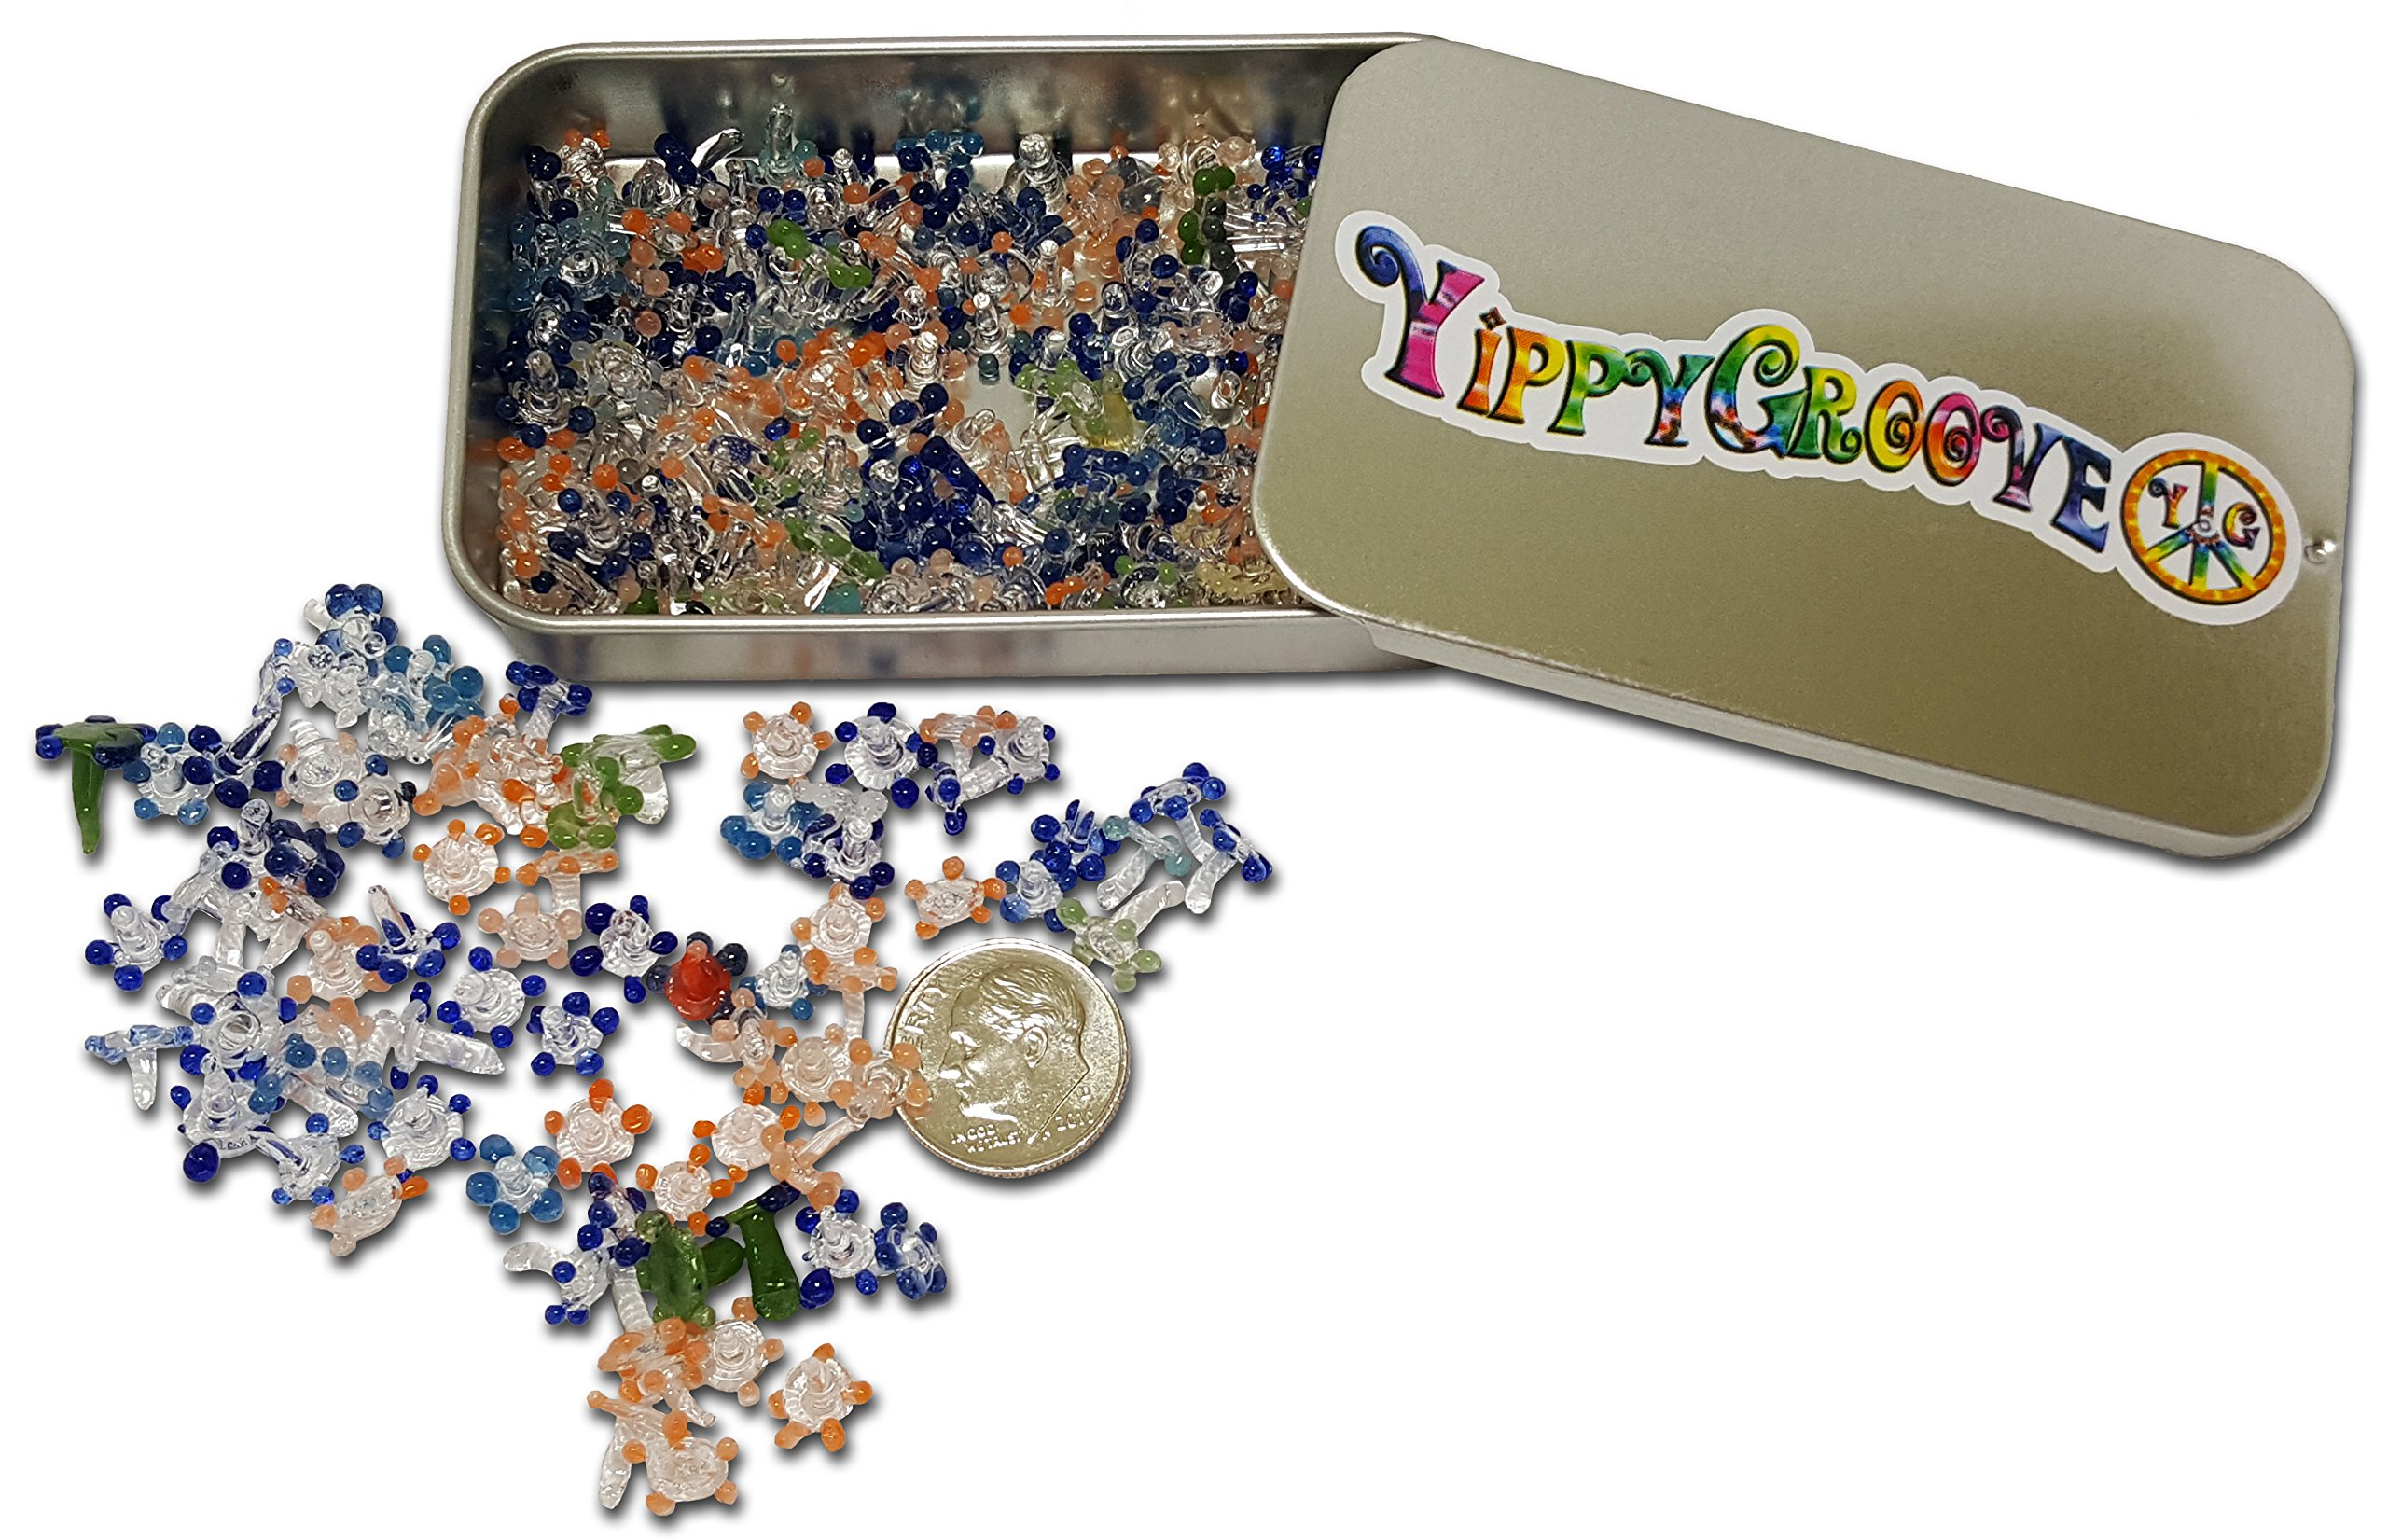 Premium Glass Daisy Pipe Screen ~ 200 Pieces Exceptional Daisy Screens in a Limited Edition YippyGroove StashTin-for a Cleaner, Safer, Ash-Free Smoke (200) by YippyGroove